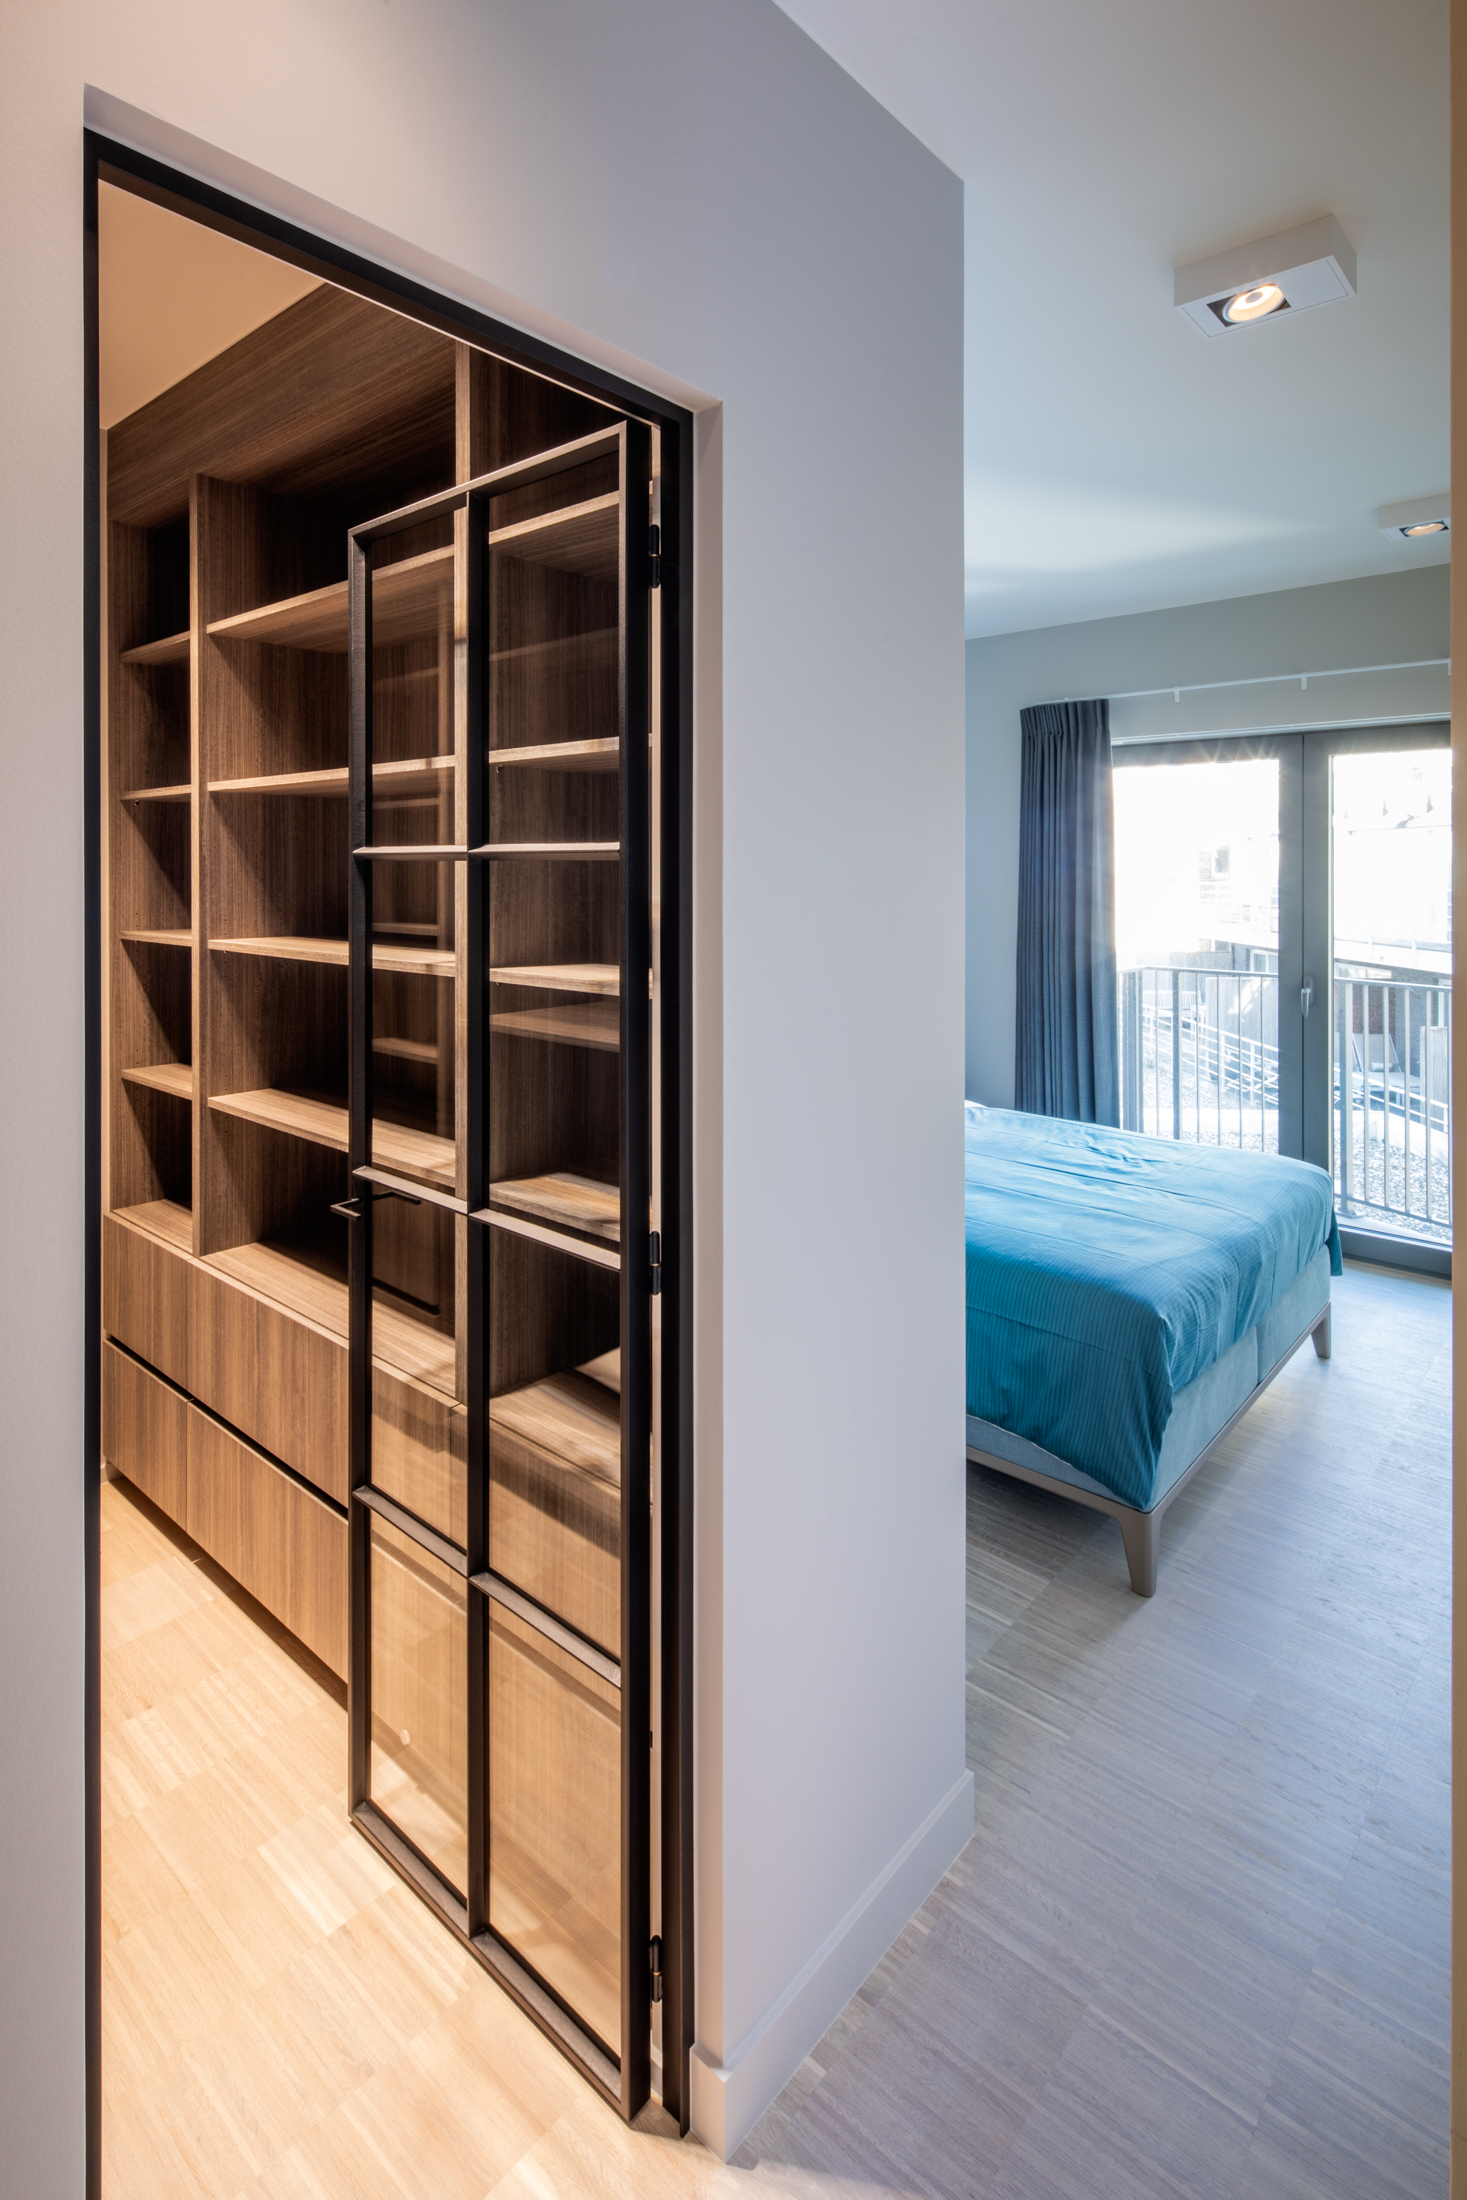 Differend---36---Knokke---Dressing-slaapkamer